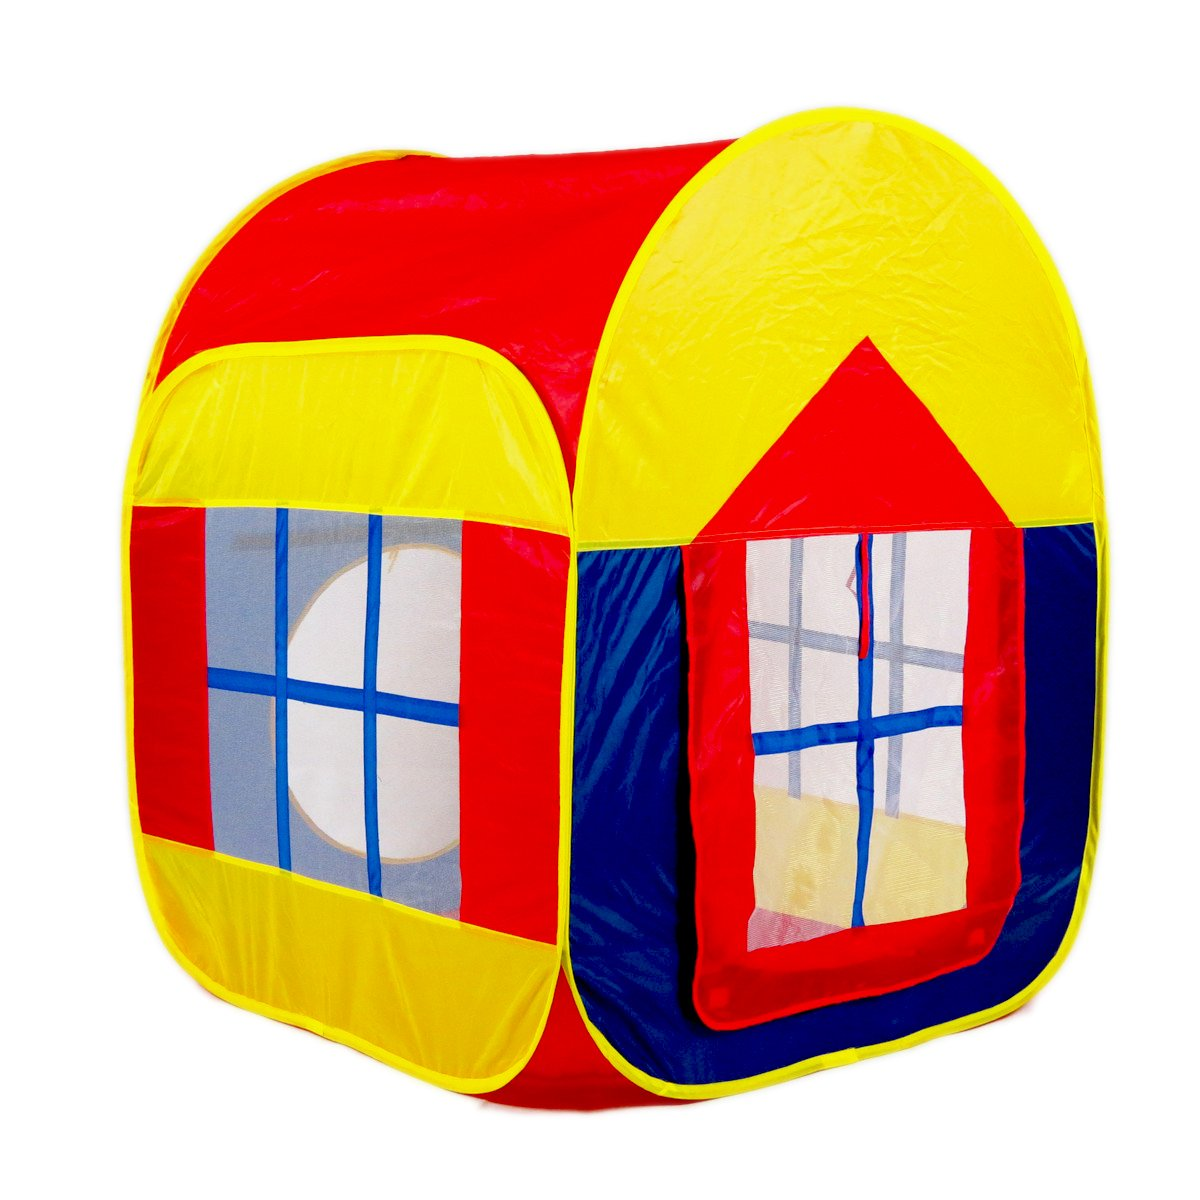 Children's Play Tent Game Playhouse